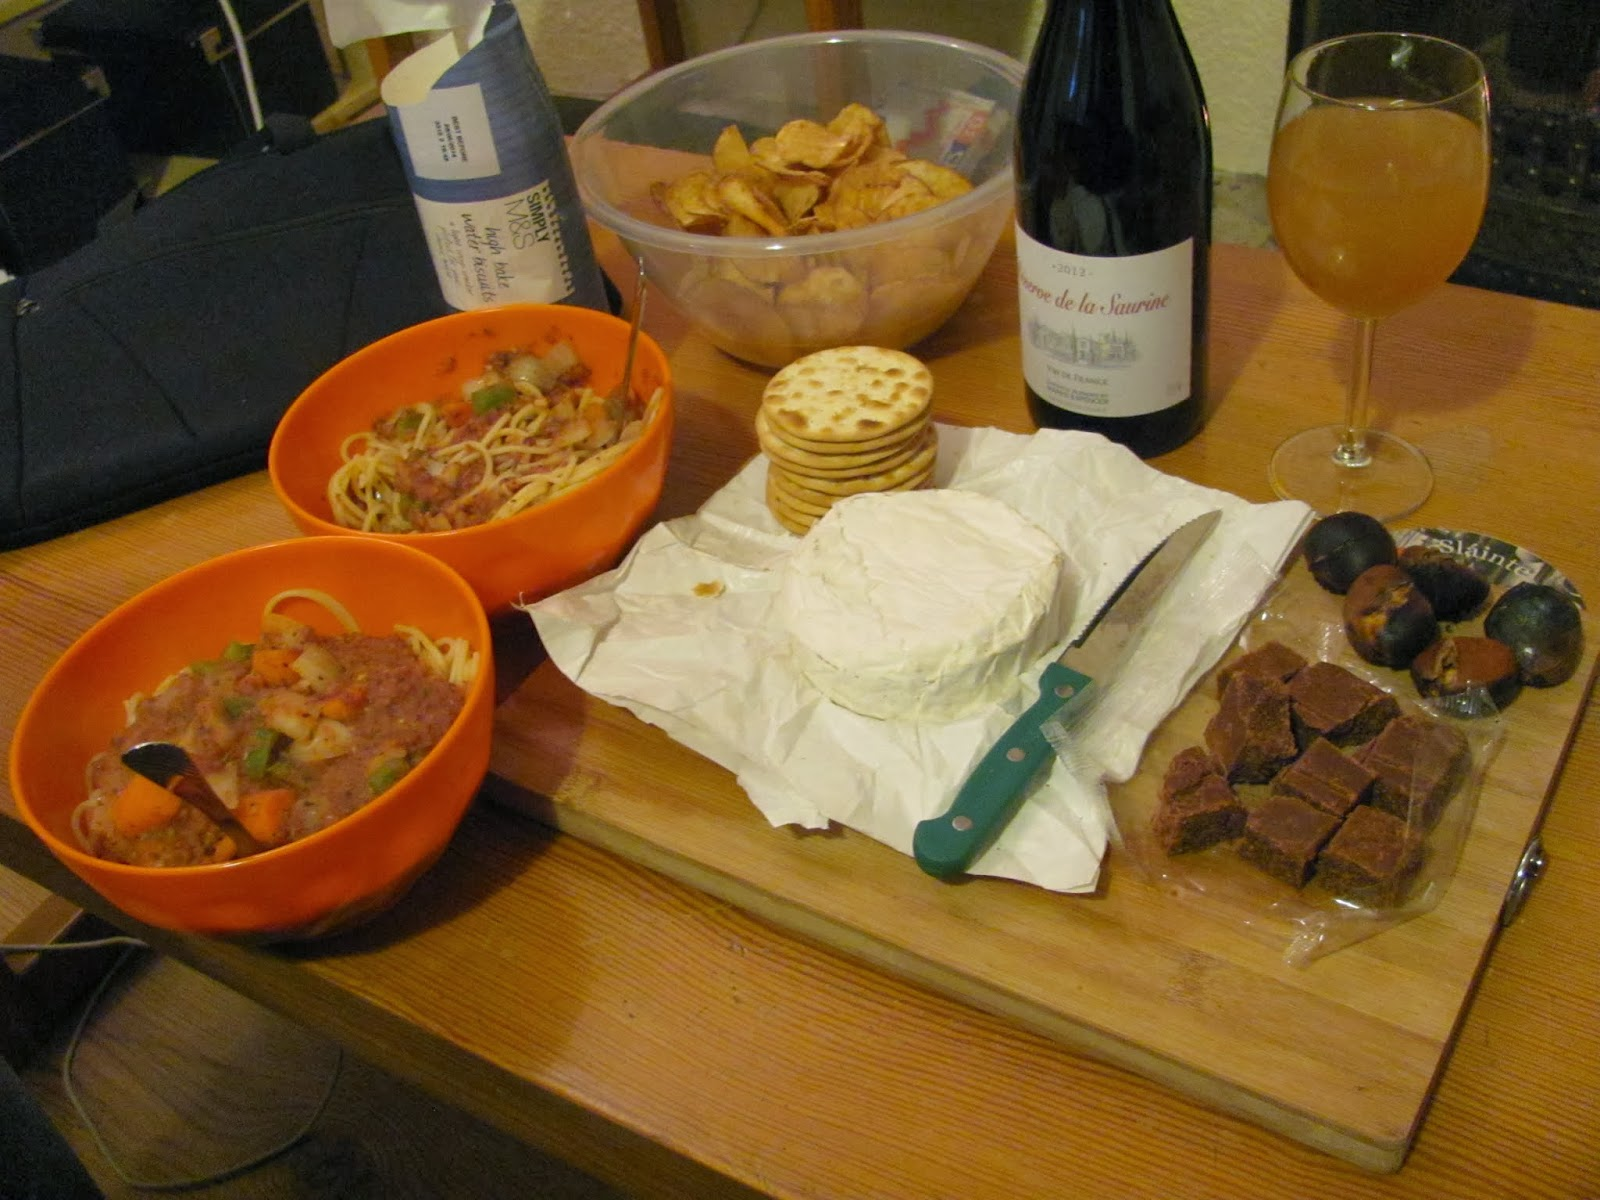 The full spread of cheese, fudge, crackers, wine, cider, pasta, chestnuts, and potato crisps